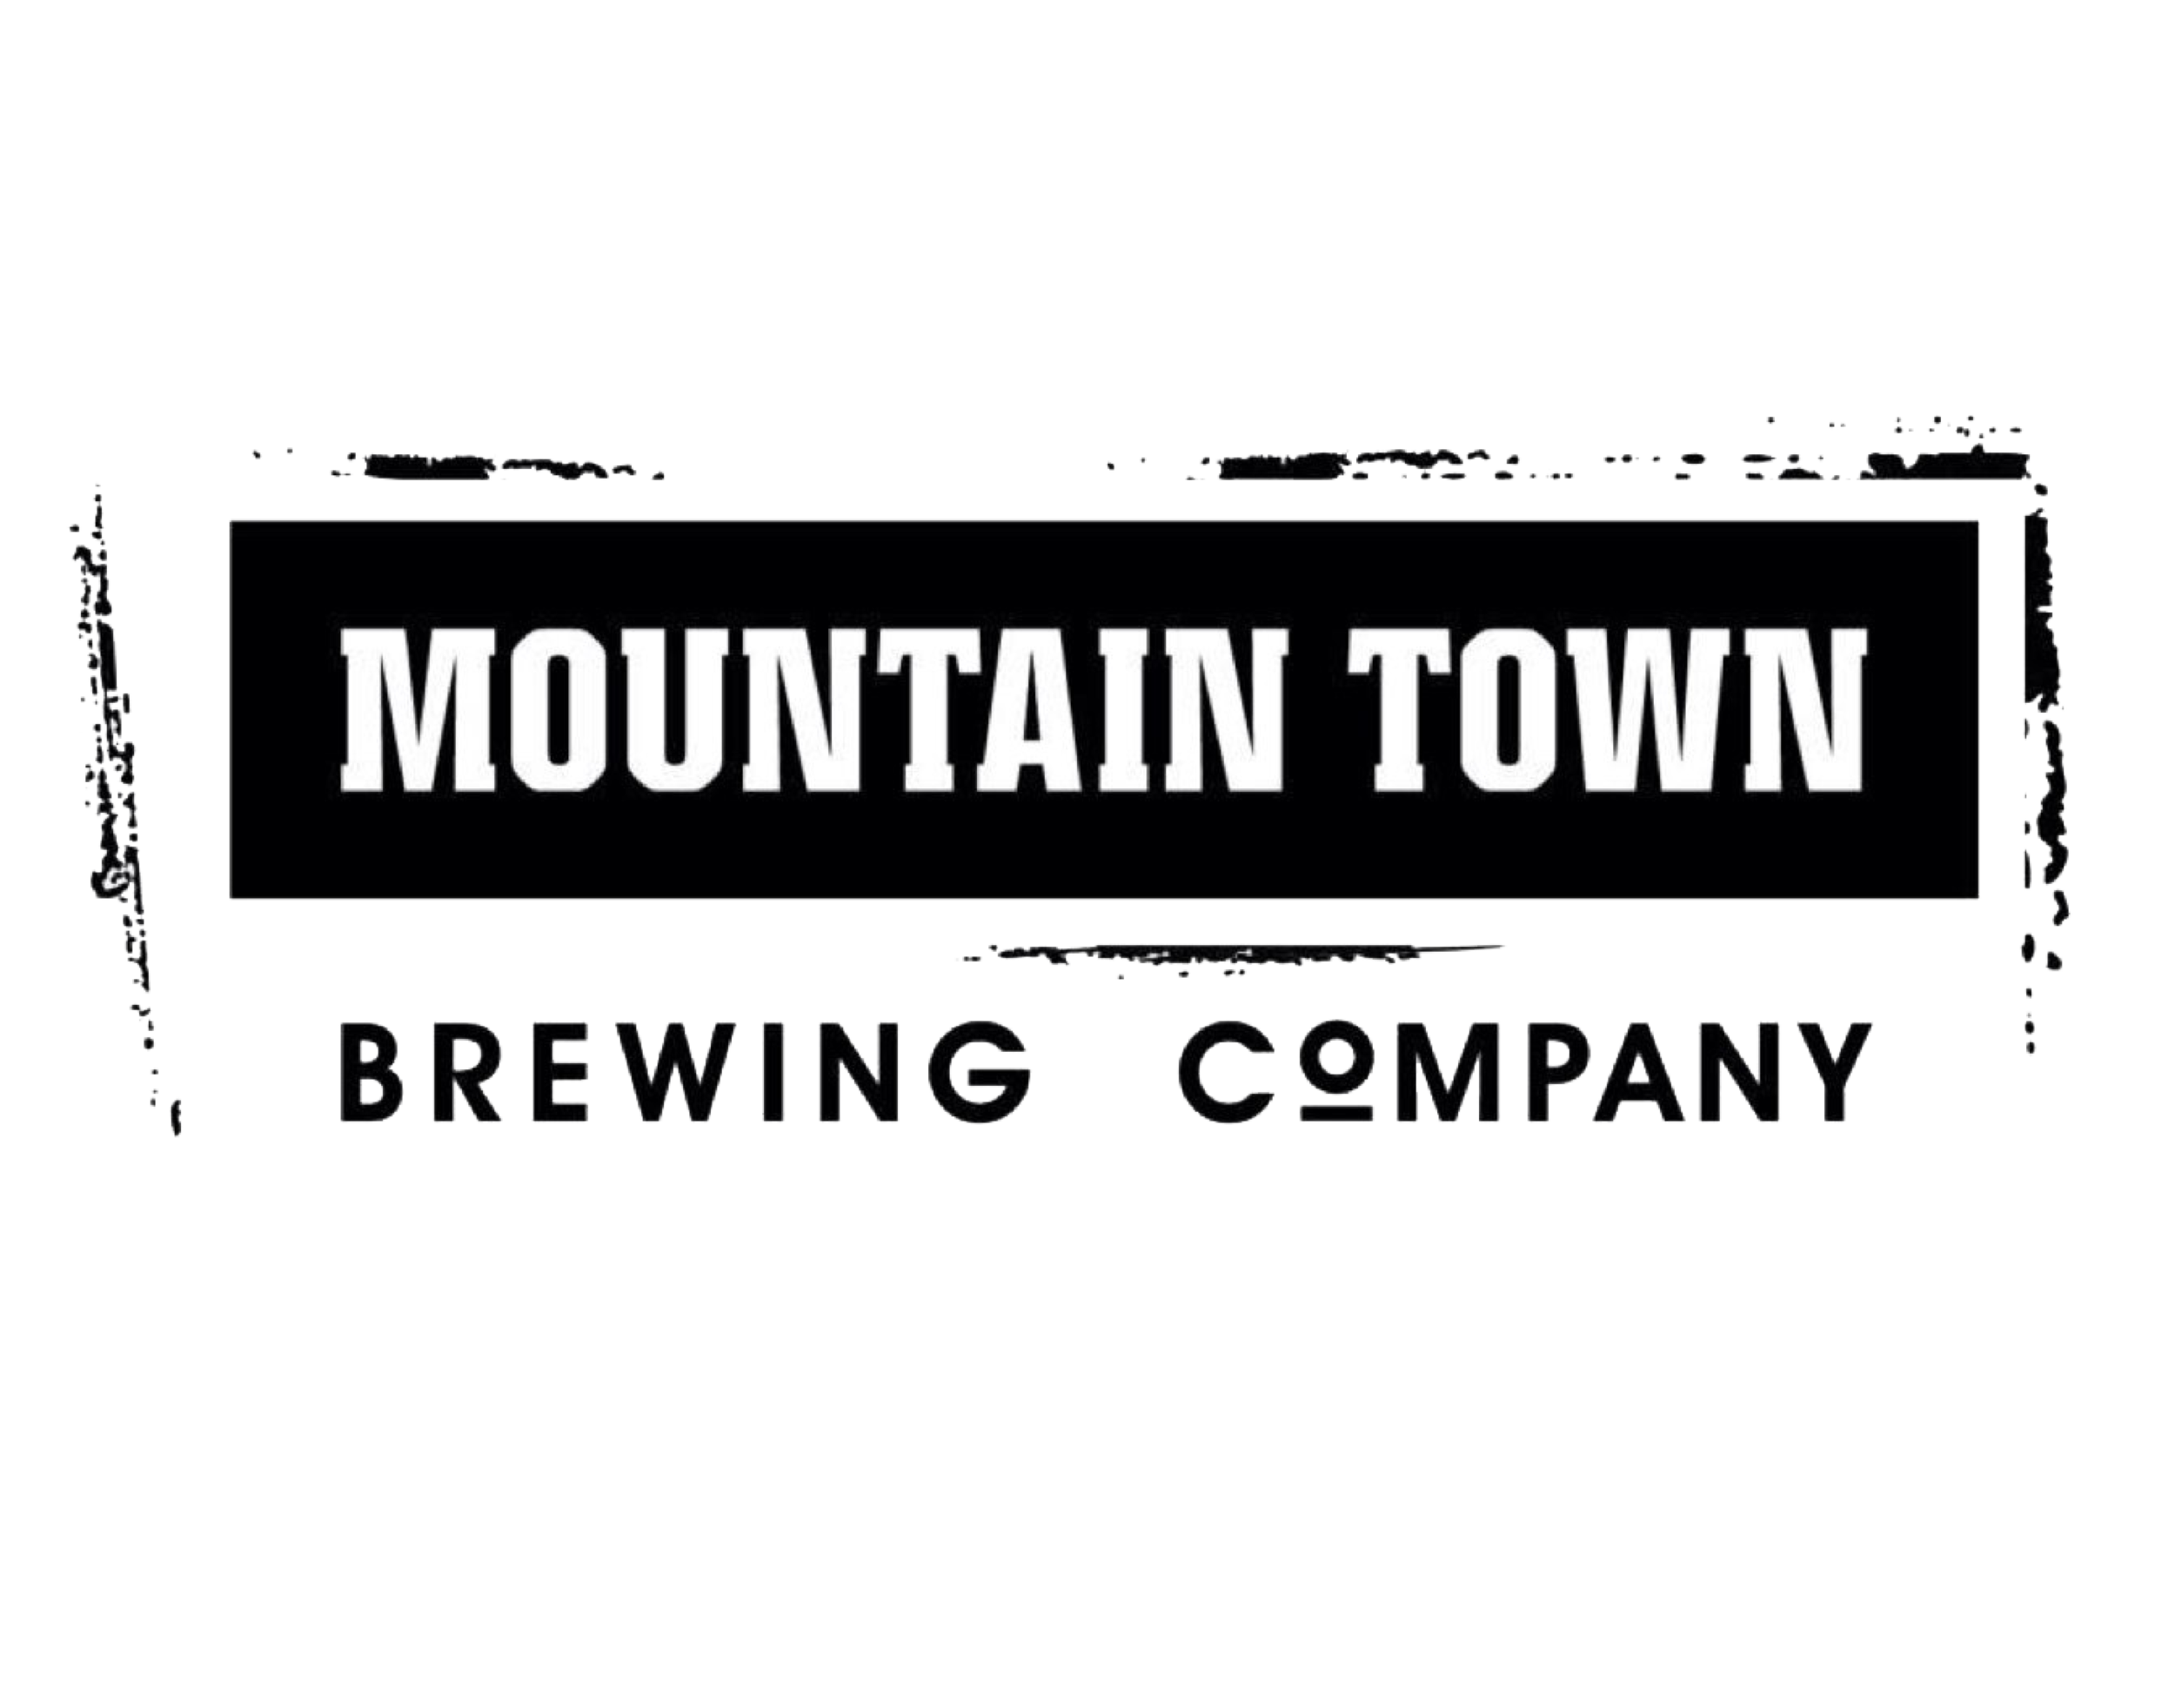 Mountain Town Brewing Company logo. Links to Mountain Town Brewing Company website.